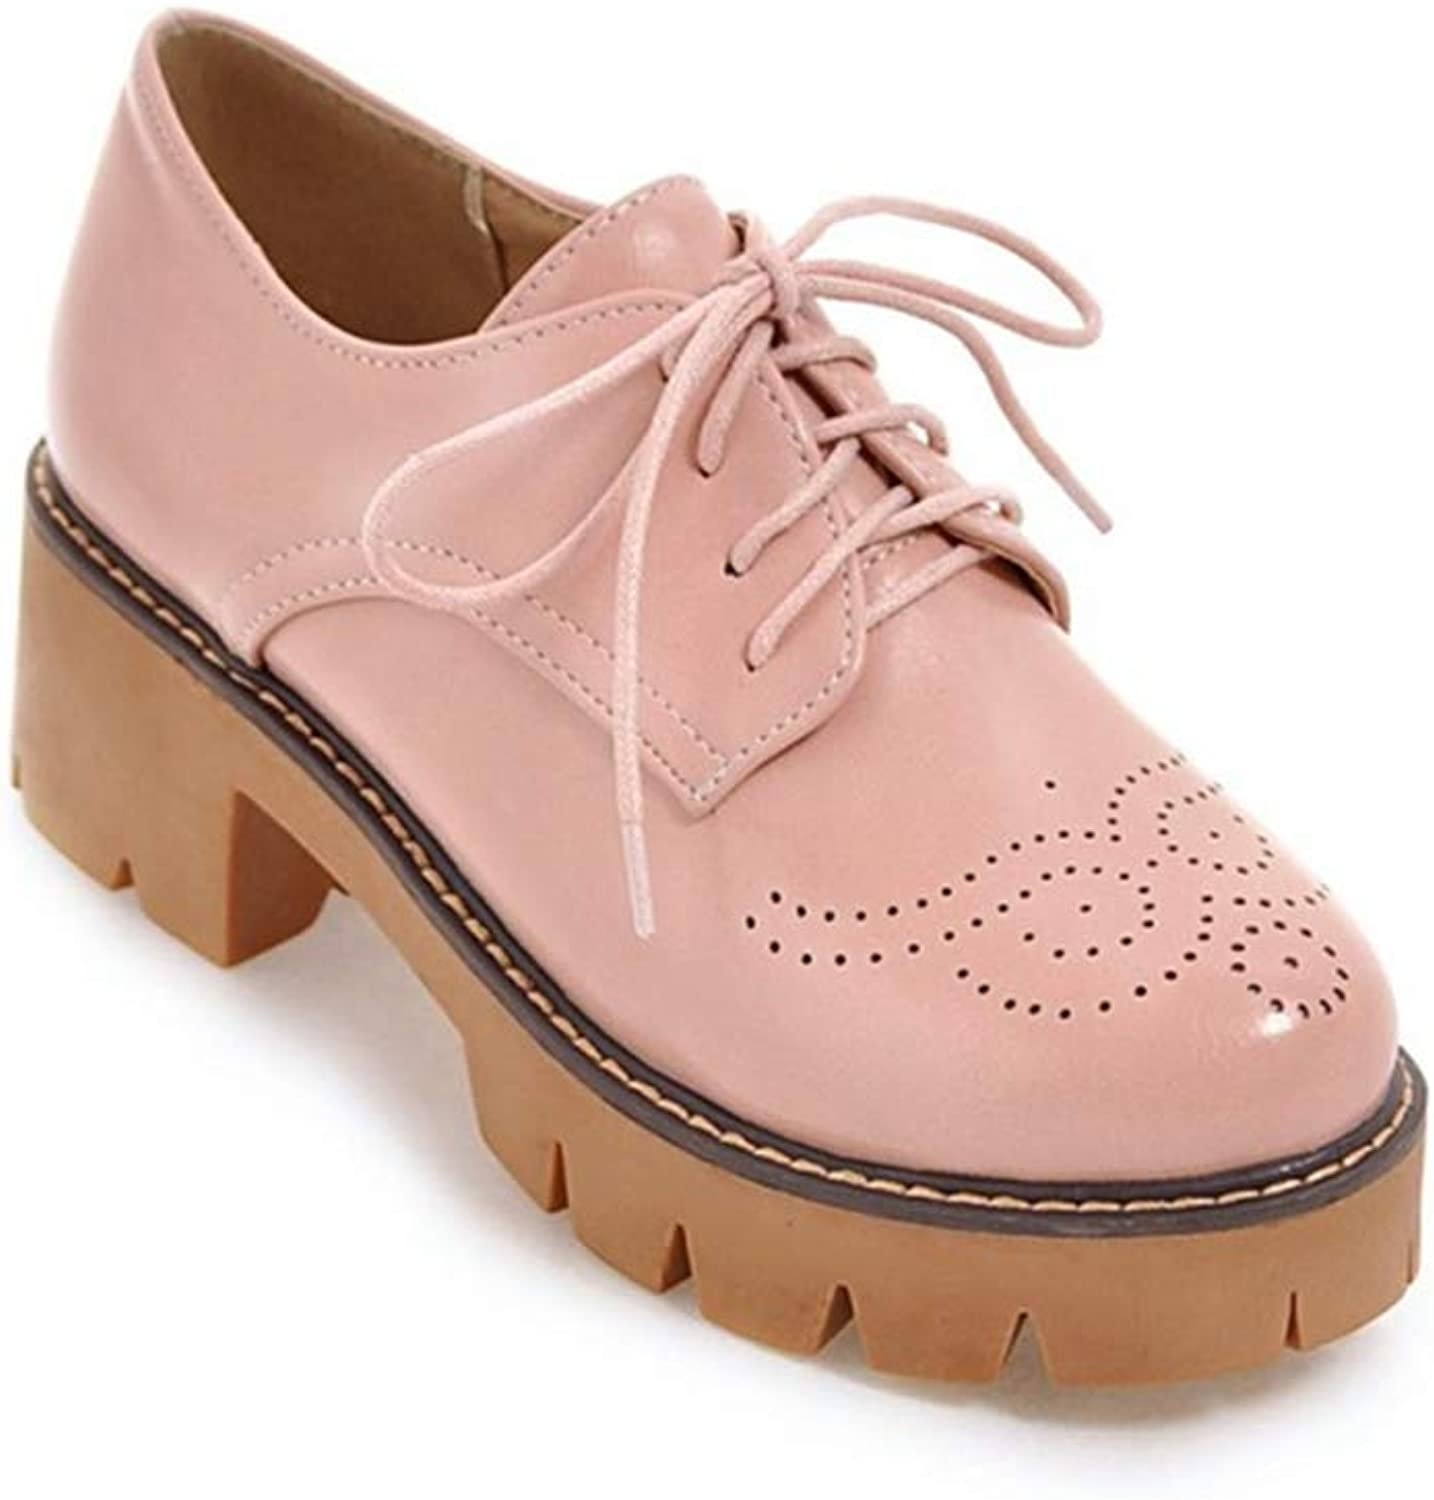 Elsa Wilcox Women Lace Up Perforated Chunky Mid Heel Vintage Dress Oxford Pumps Round Toe Platform Oxford shoes